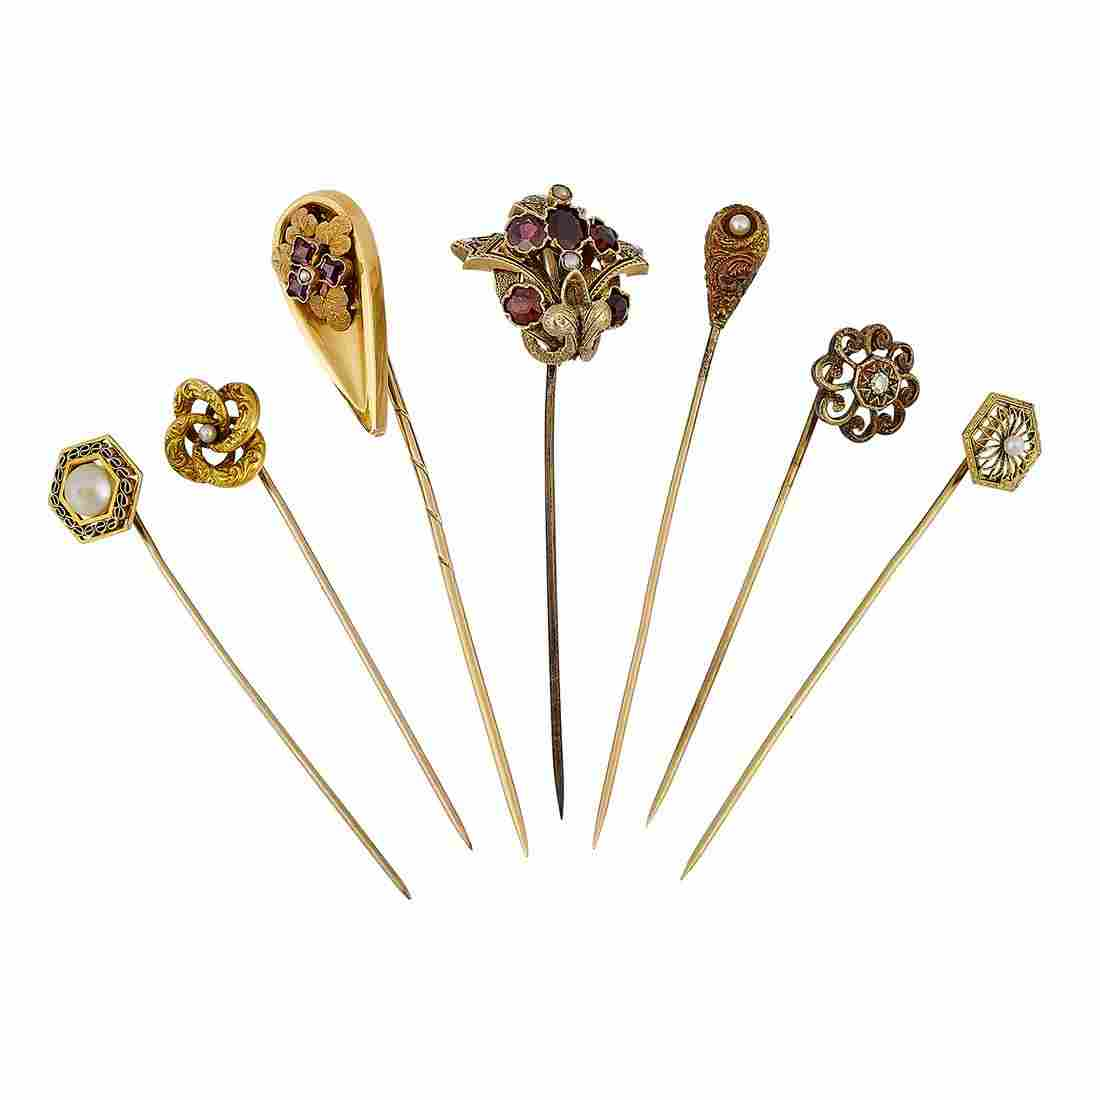 Victorian group of stick pins, seven